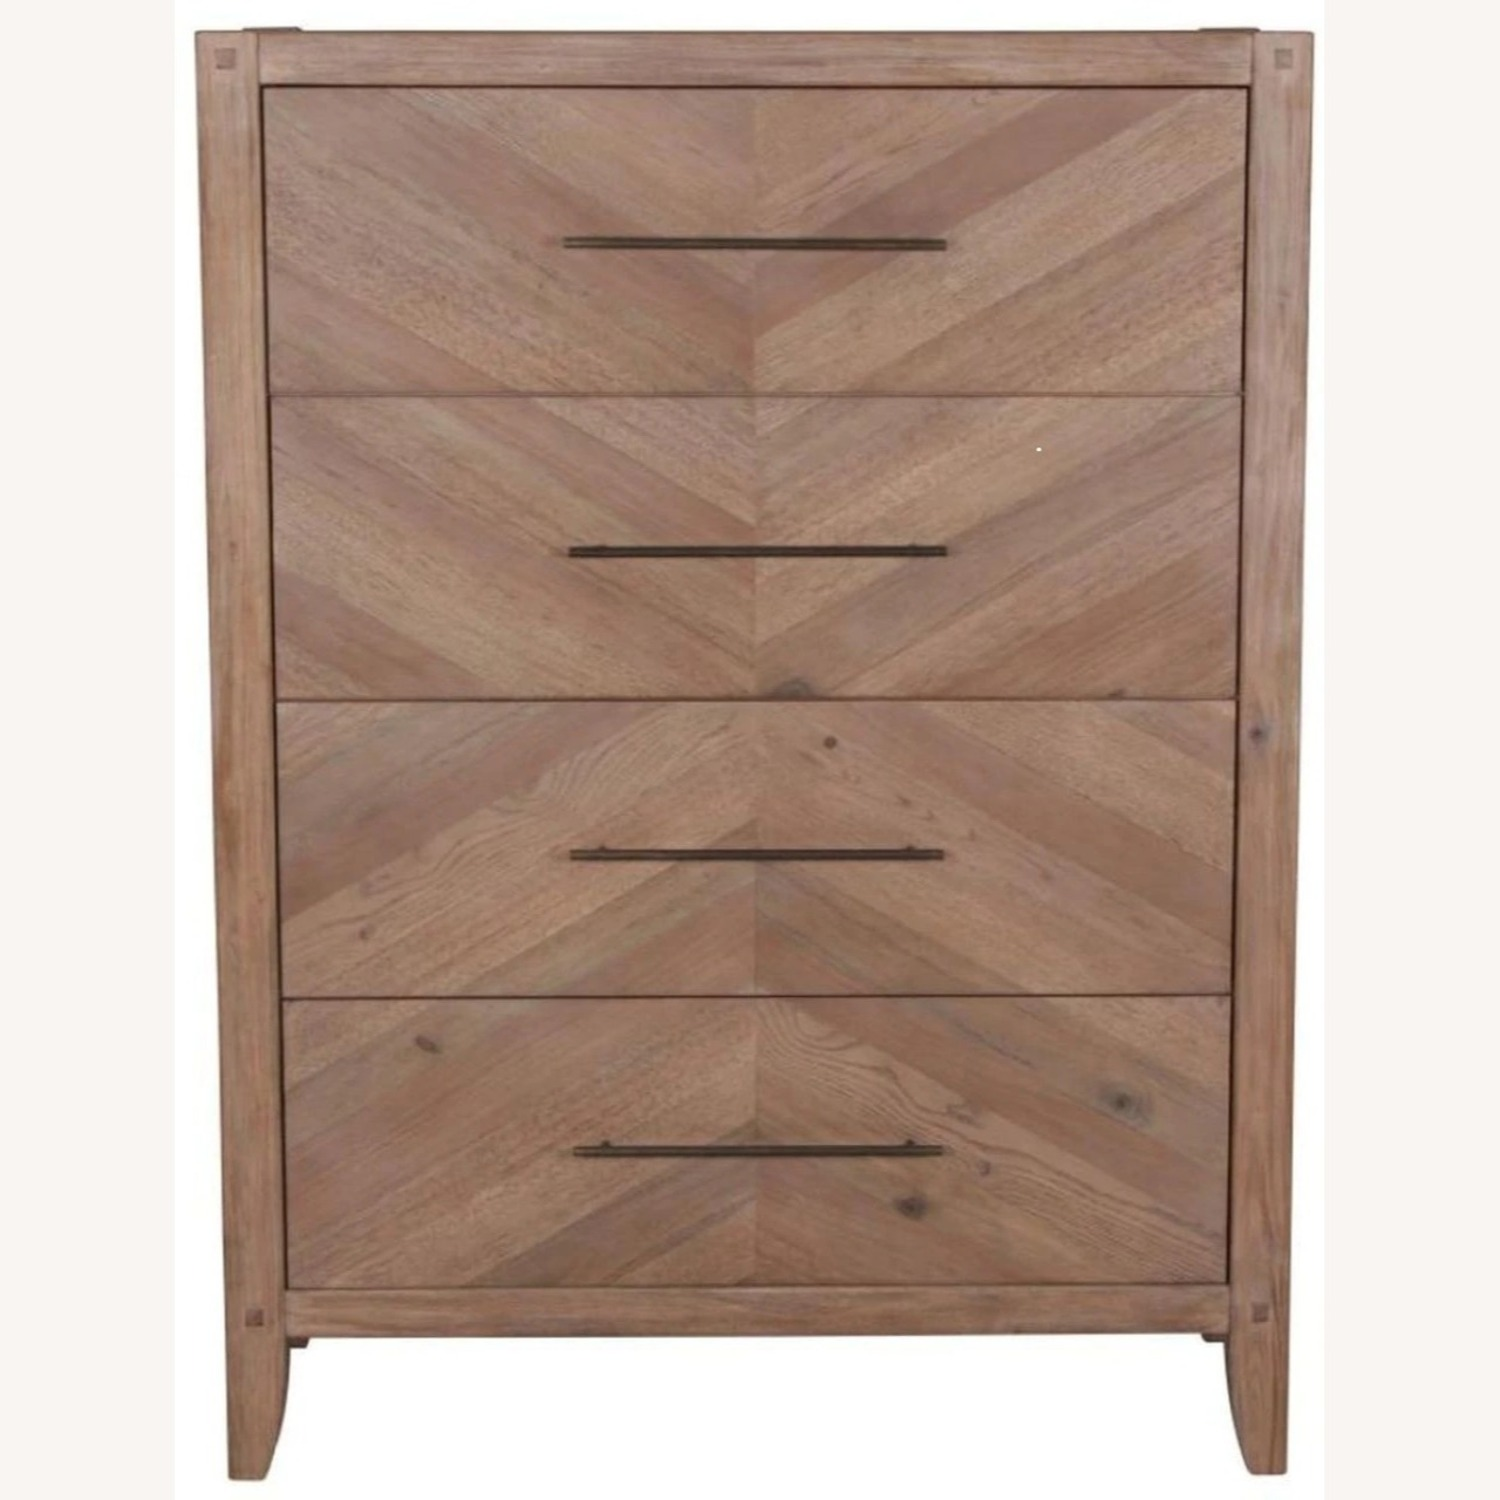 Modern Chest In Natural White Washed Finish - image-1